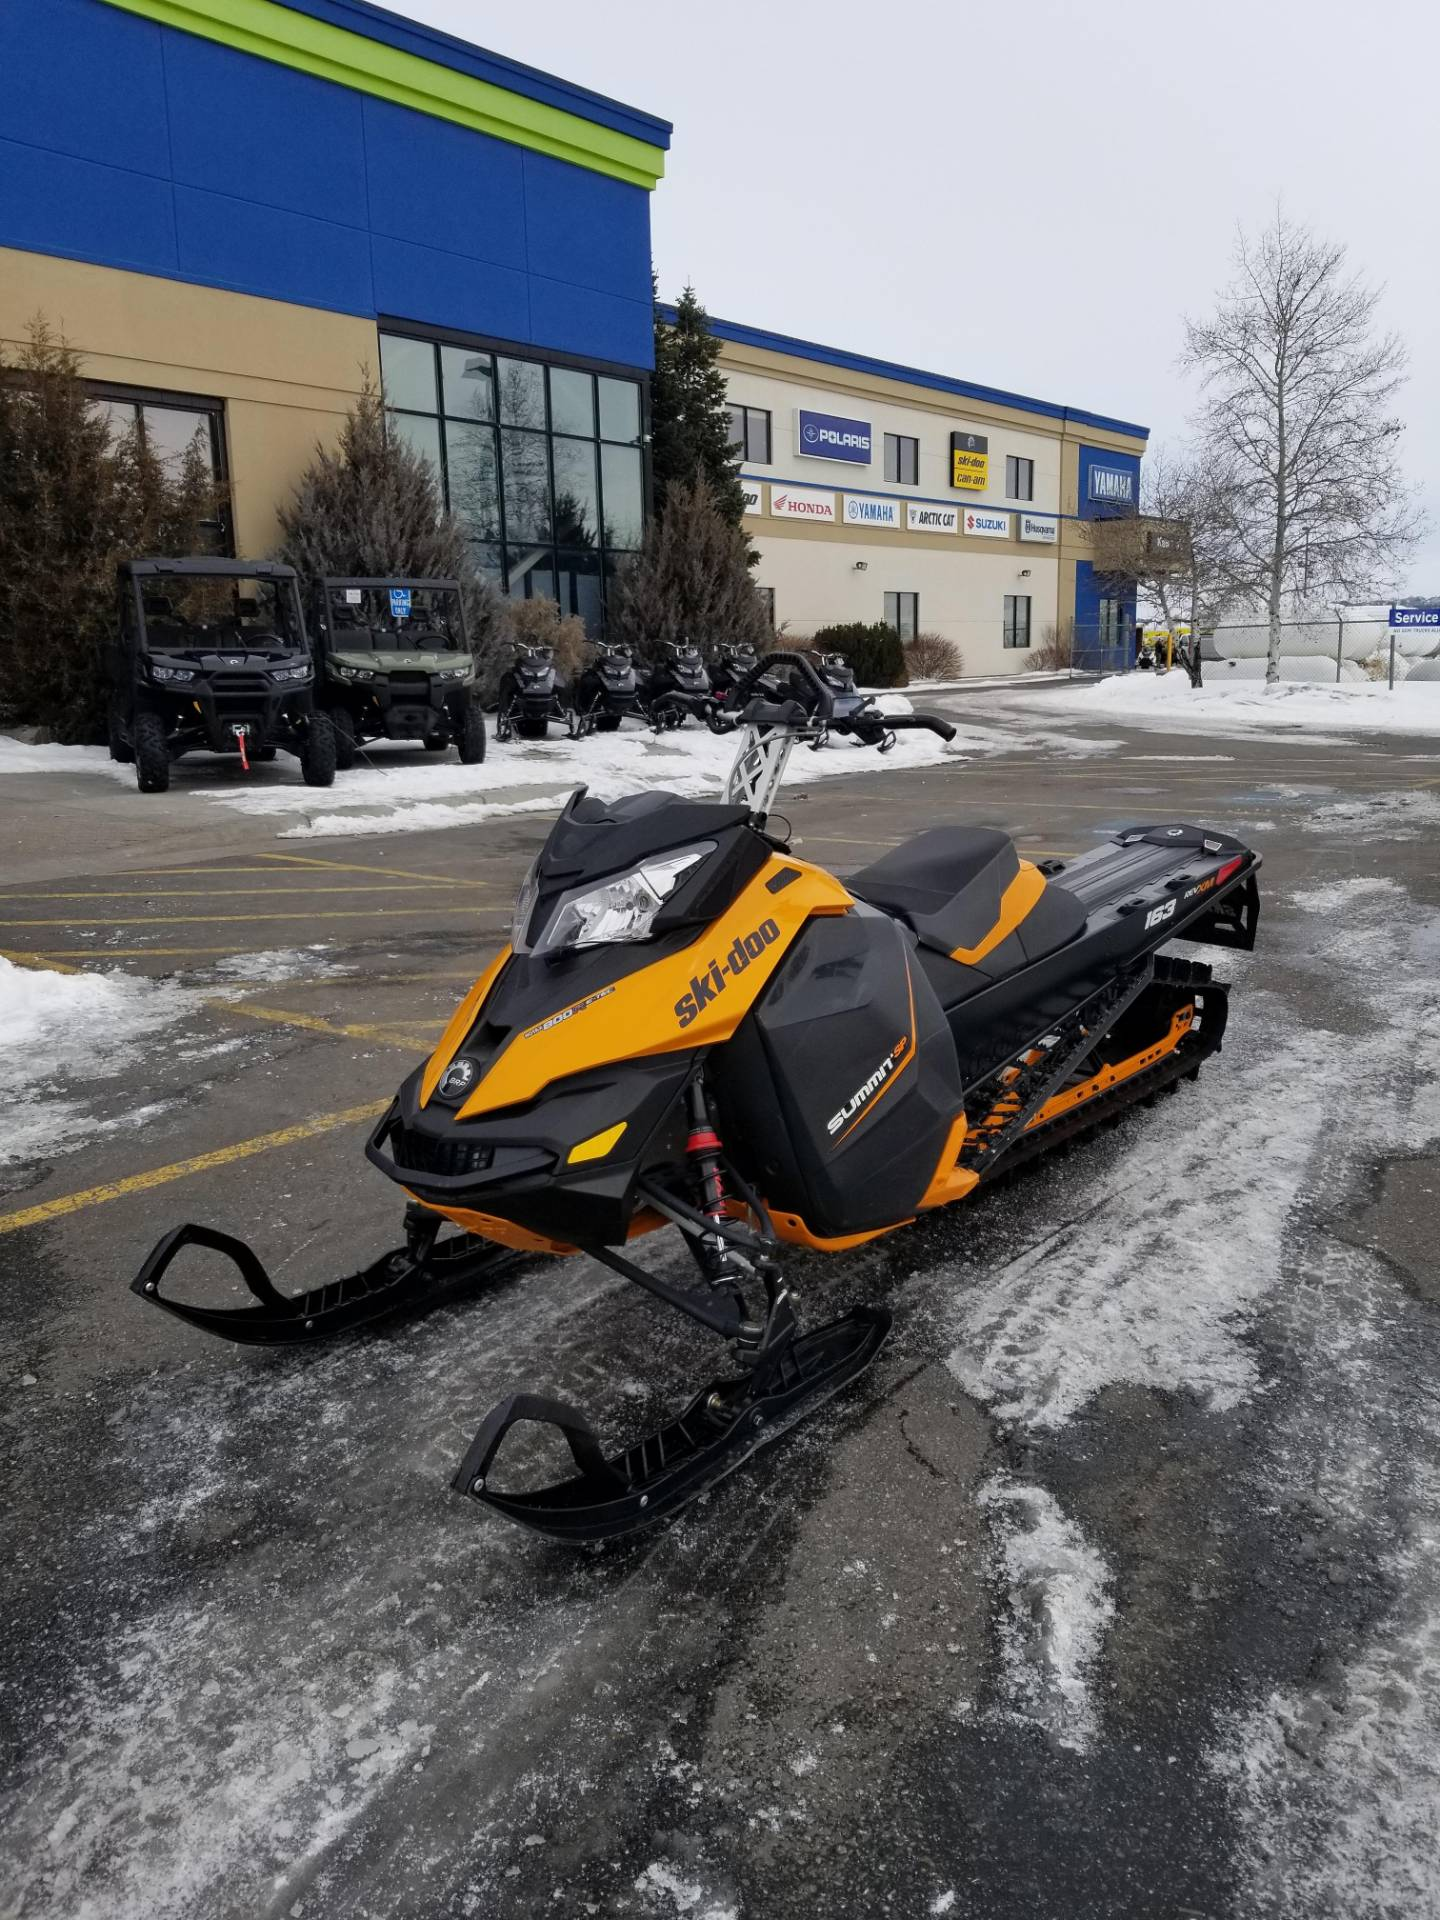 2013 Ski-Doo Summit® SP E-TEC 800R 163 in Rexburg, Idaho - Photo 2